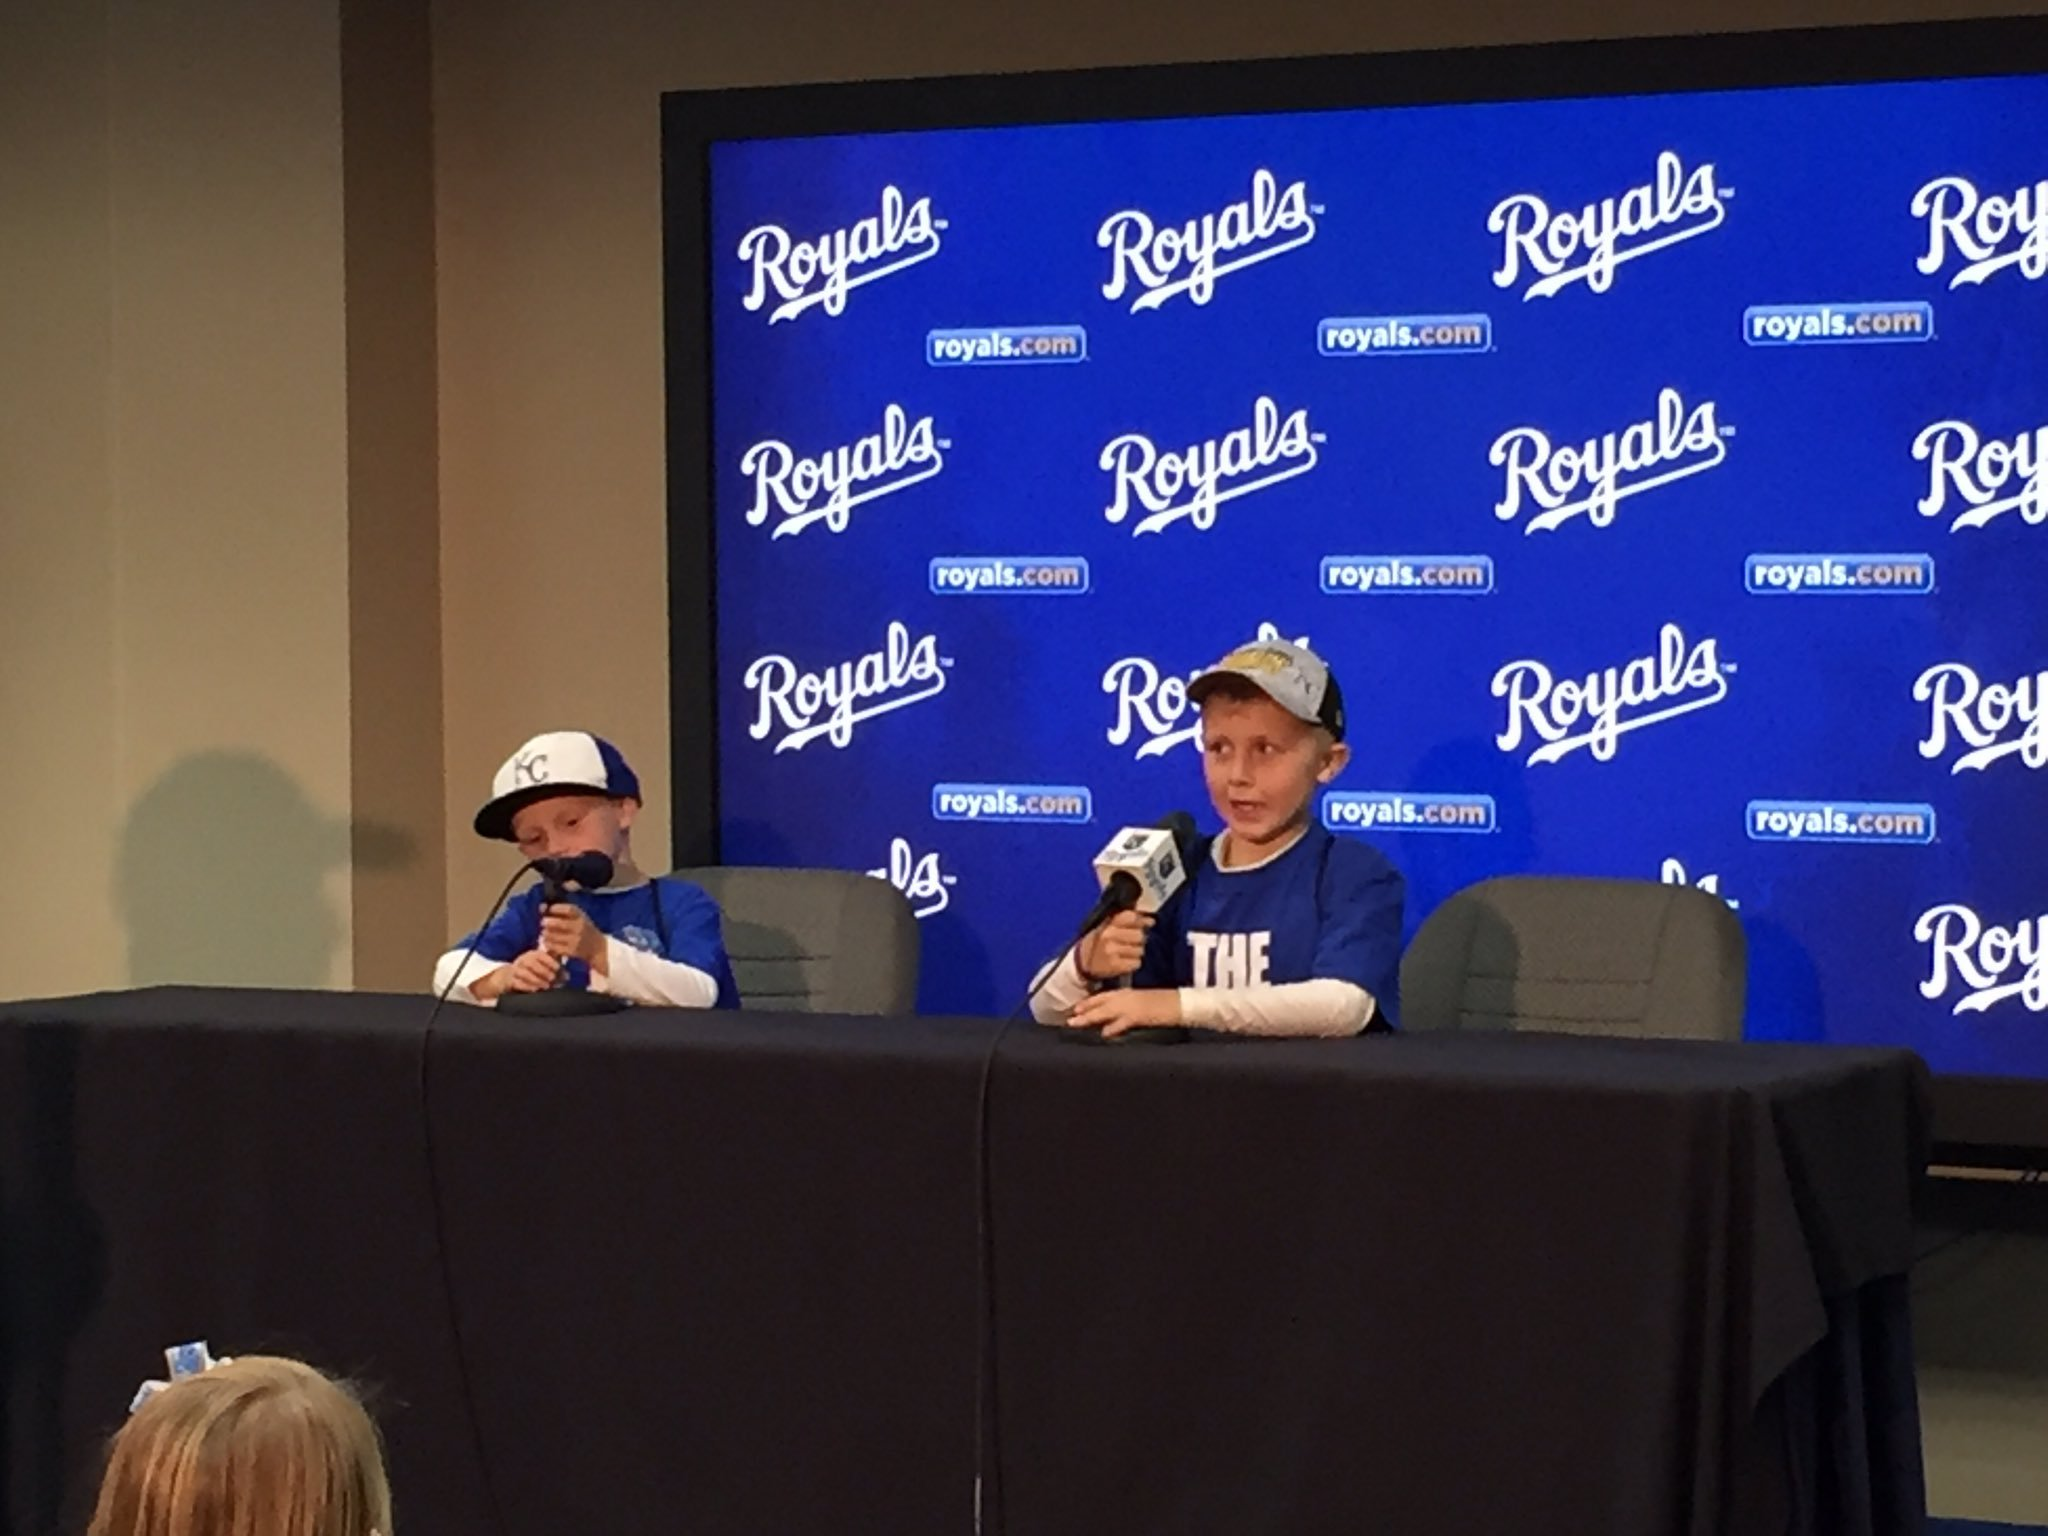 A 5-year-old cancer survivor's dream came true Thursday thanks to the Kansas City Royals. (KCTV5)